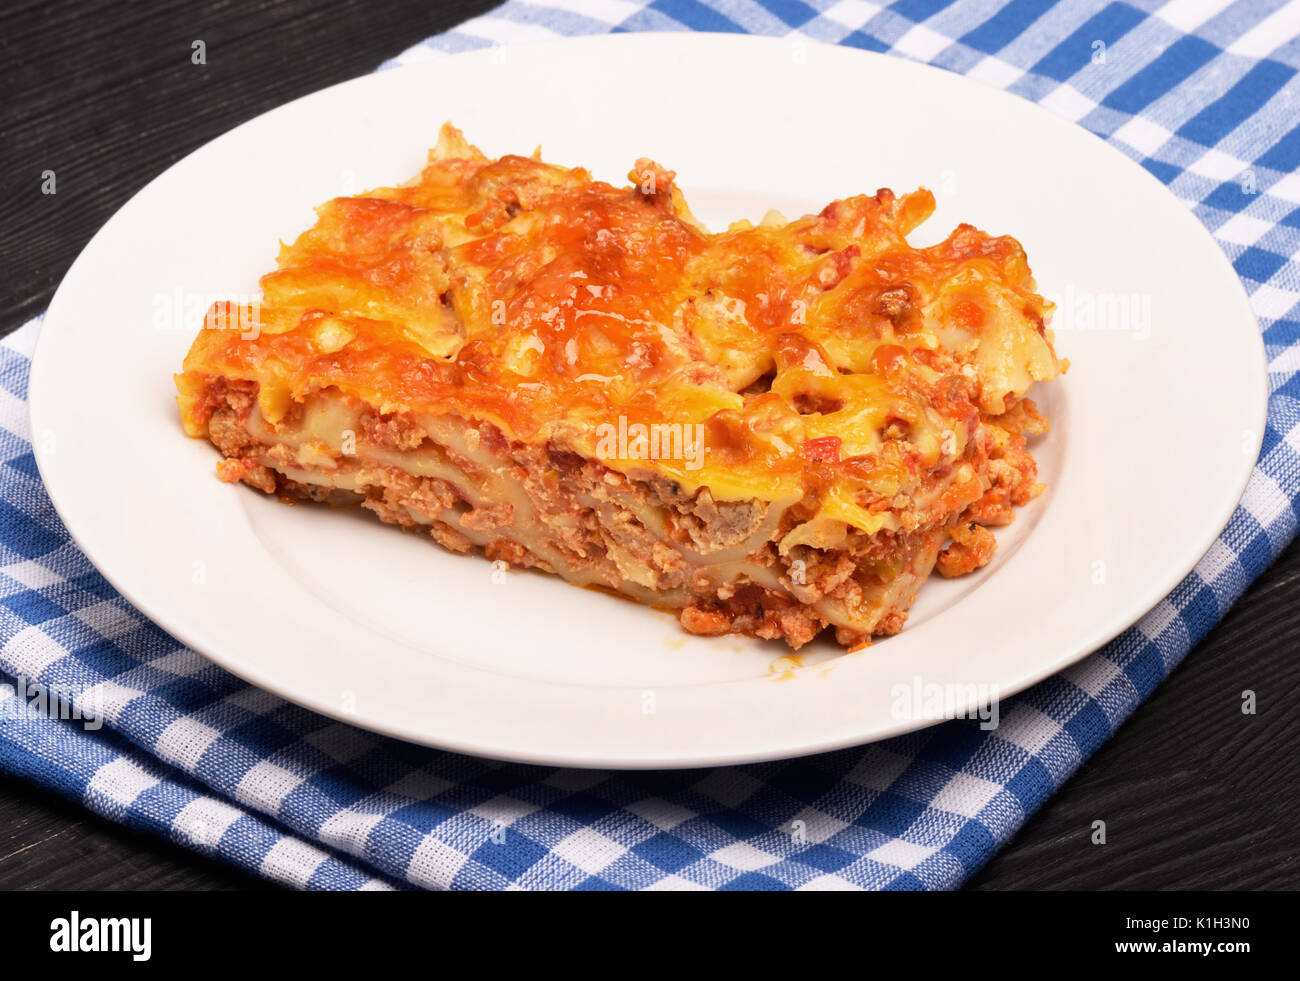 Discussion on this topic: Cannelloni with Basil Tomato Sauce, cannelloni-with-basil-tomato-sauce/